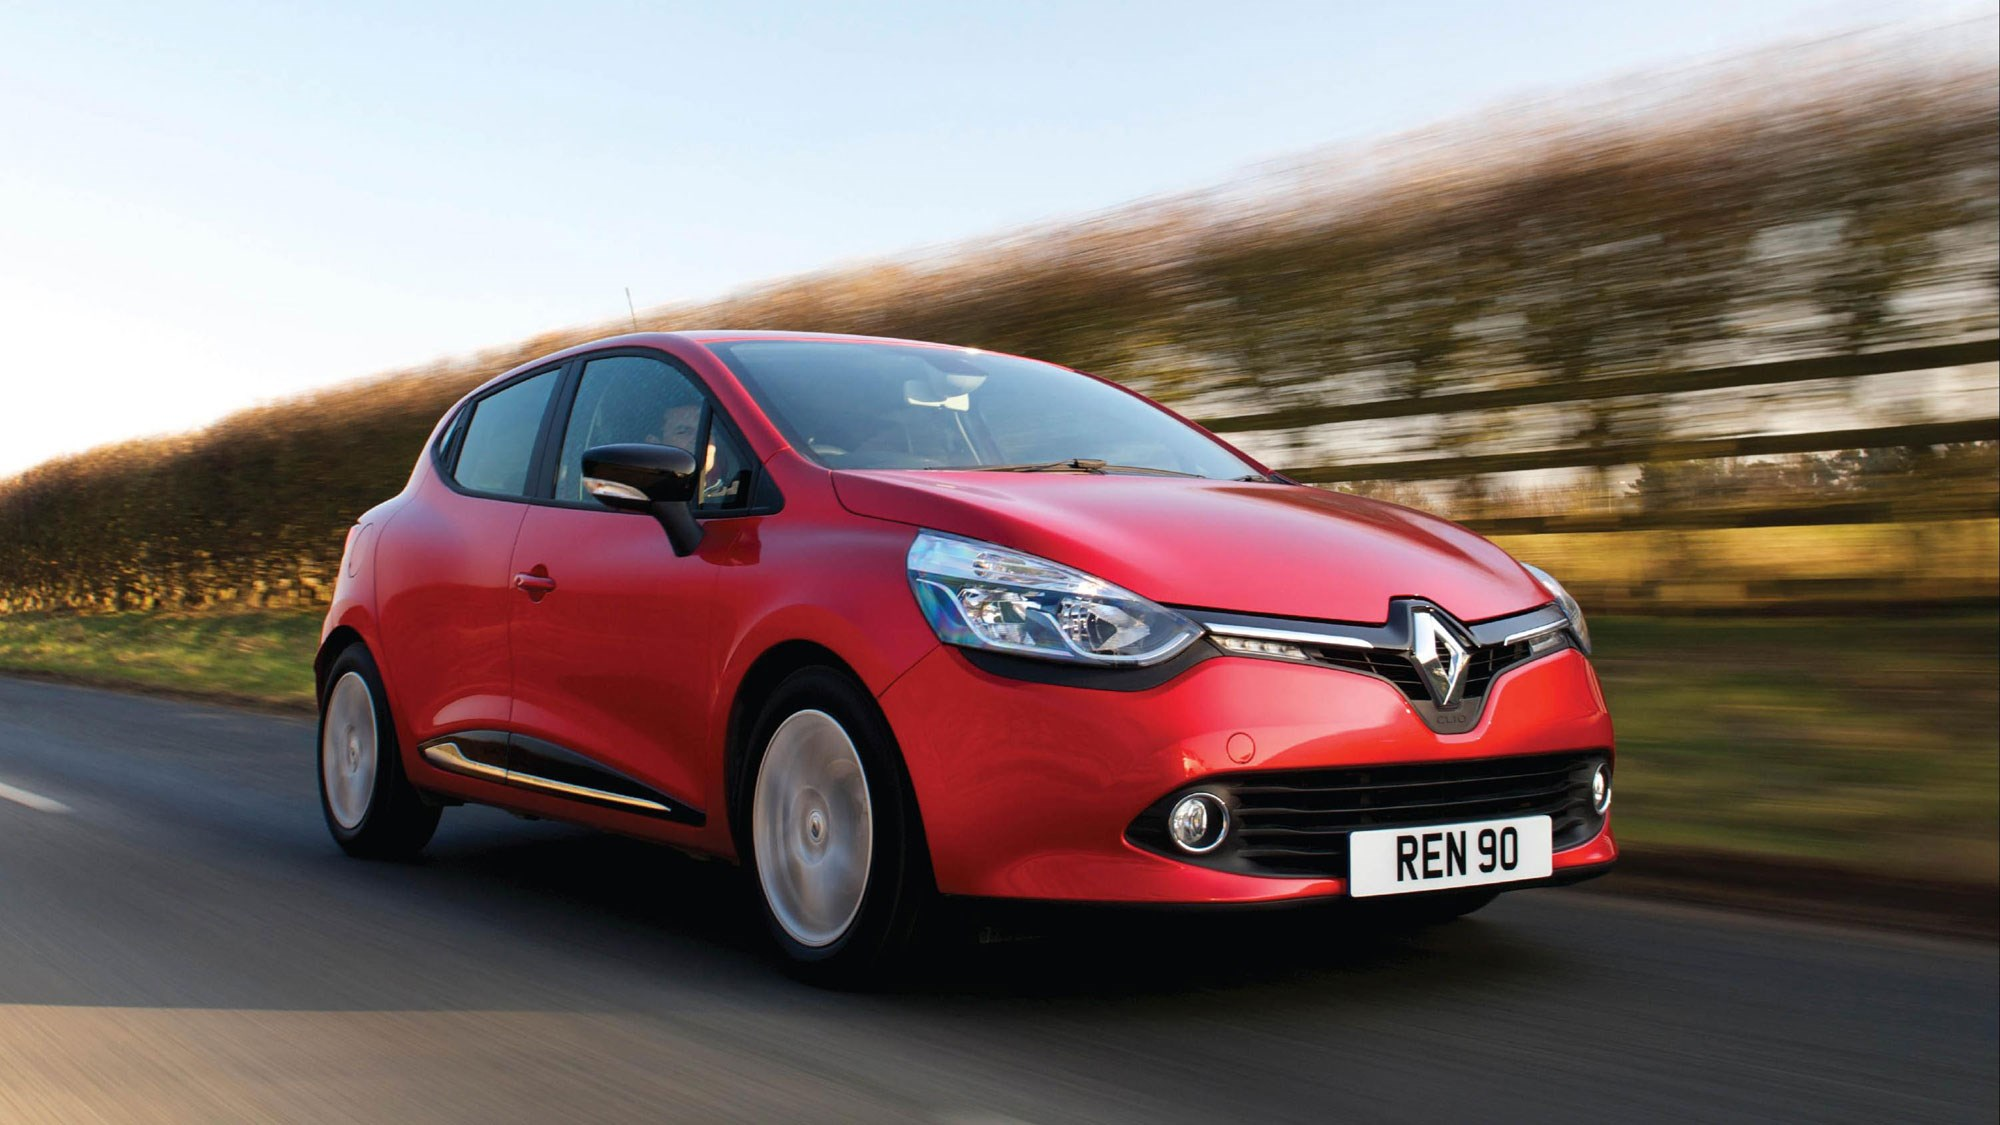 renault clio dynamique medianav 1 5 dci 90 2015 review by car magazine. Black Bedroom Furniture Sets. Home Design Ideas